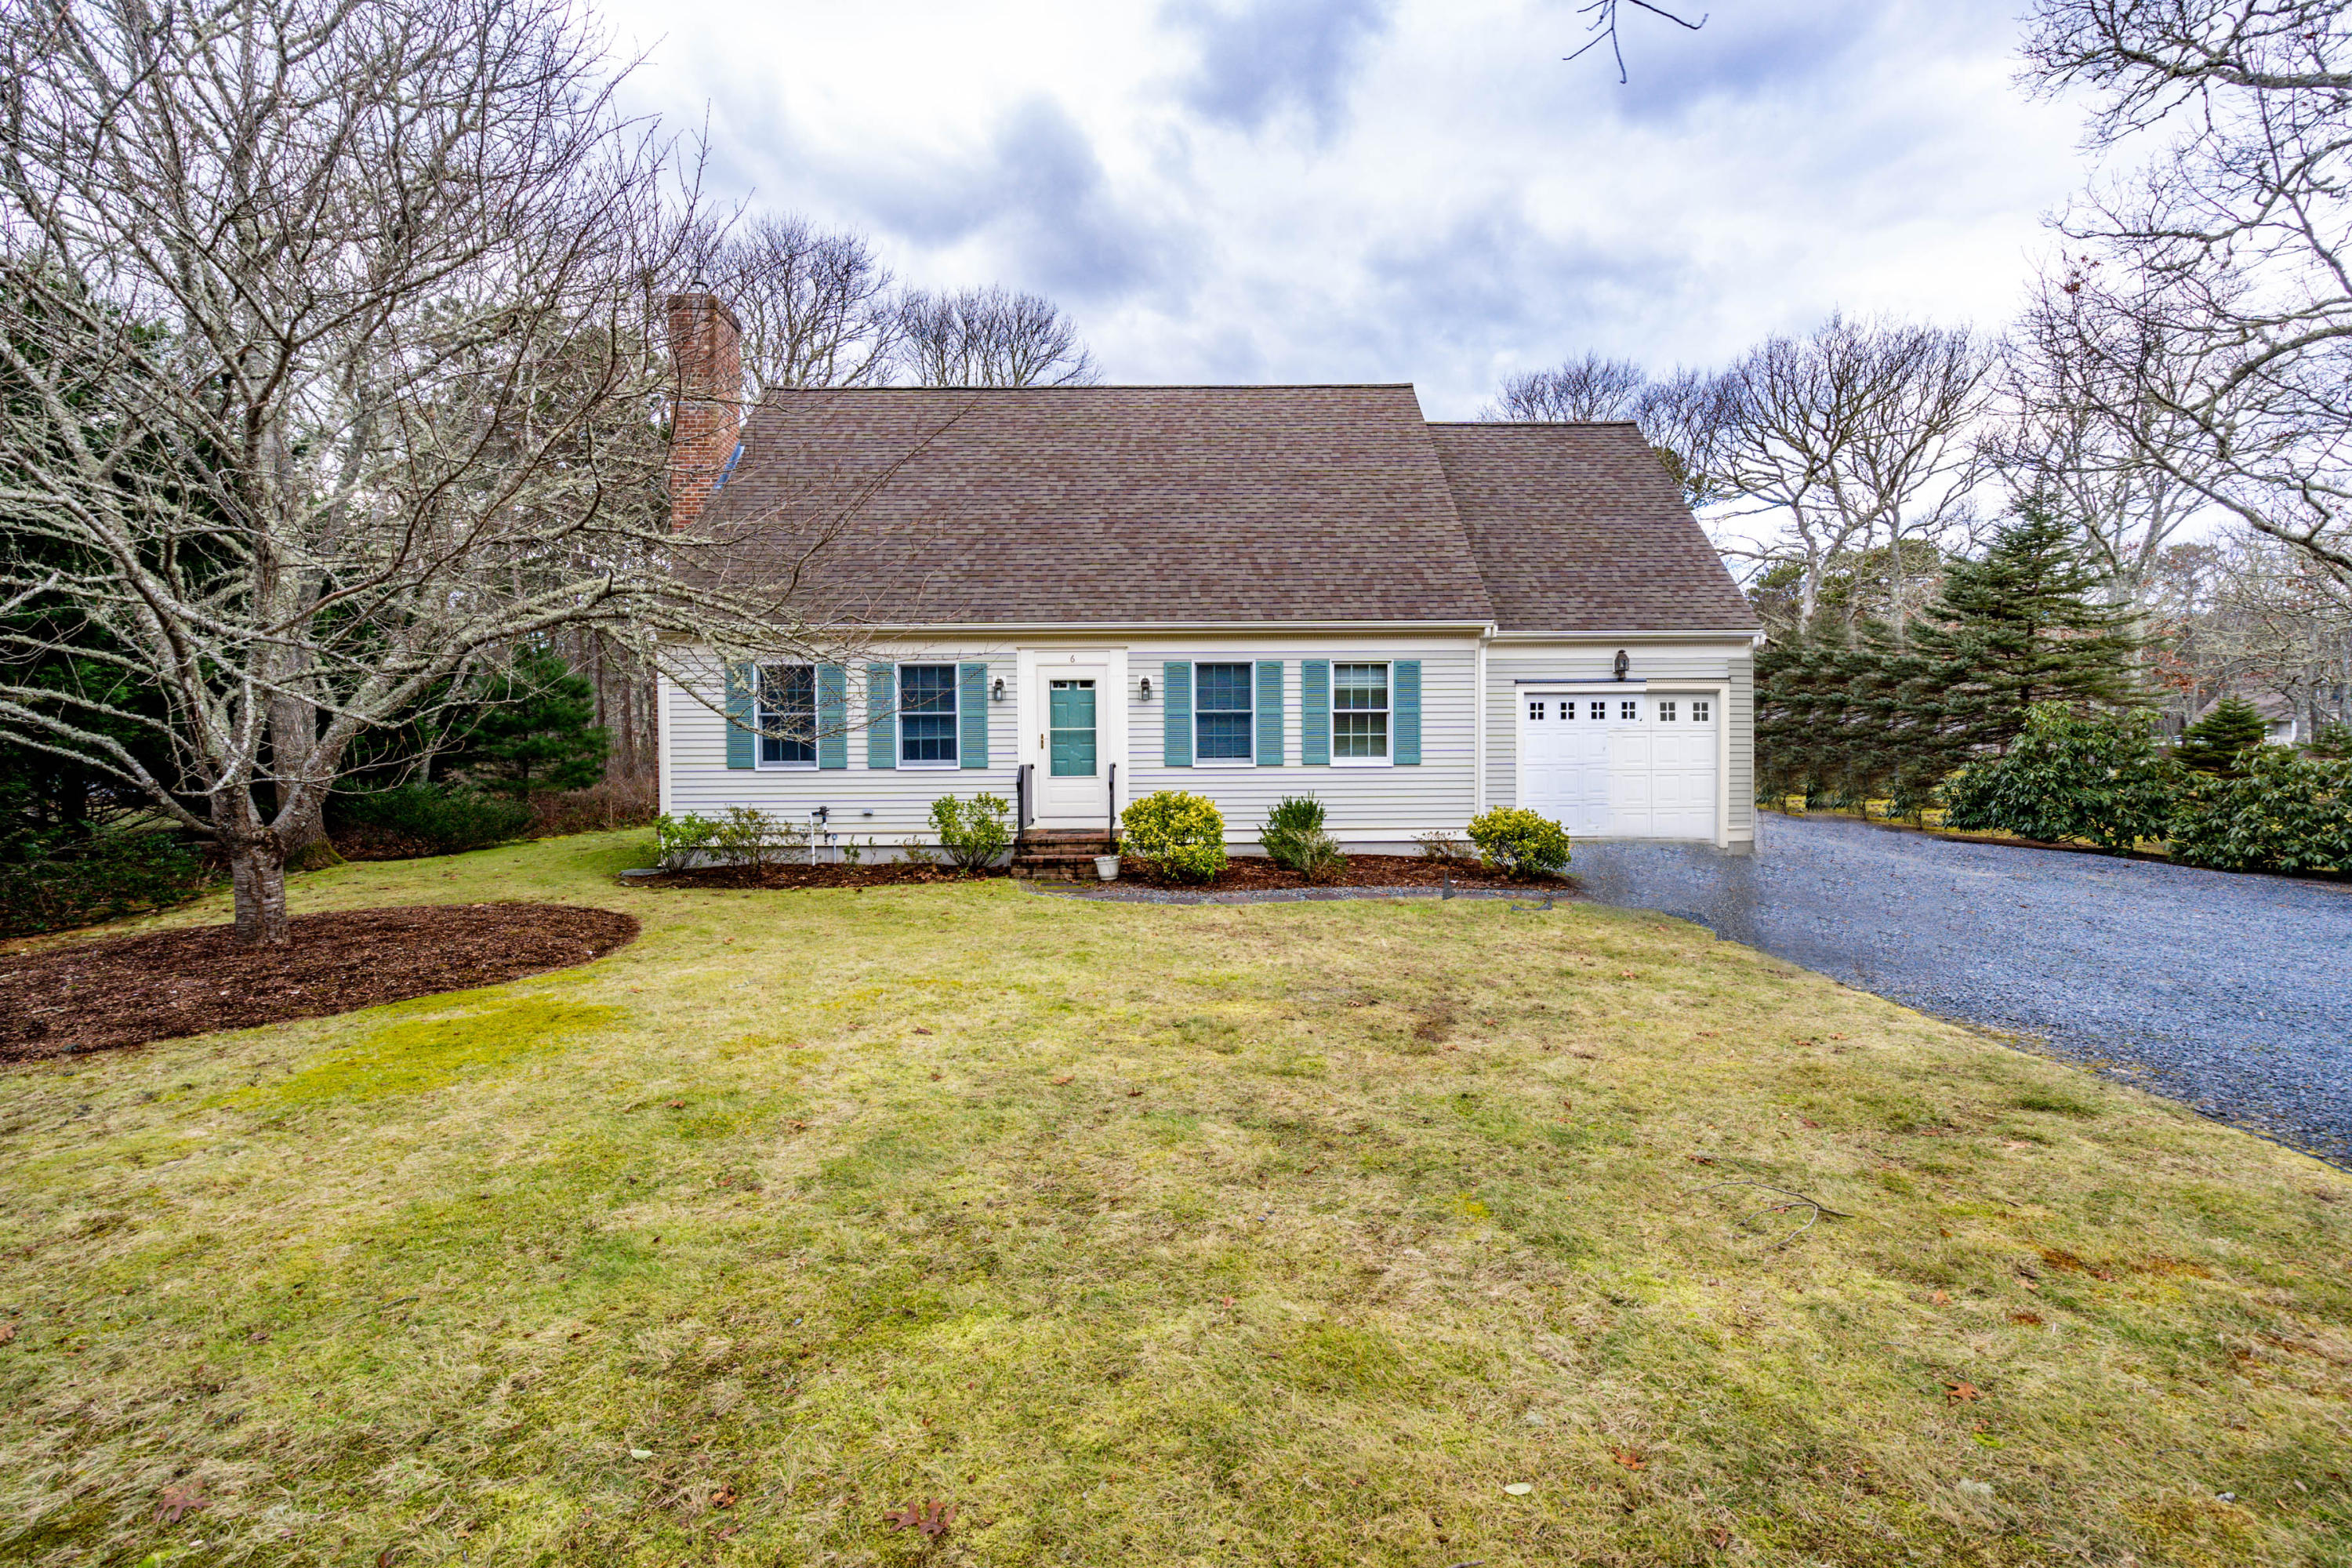 6-huckleberry-drive-orleans-ma-02653